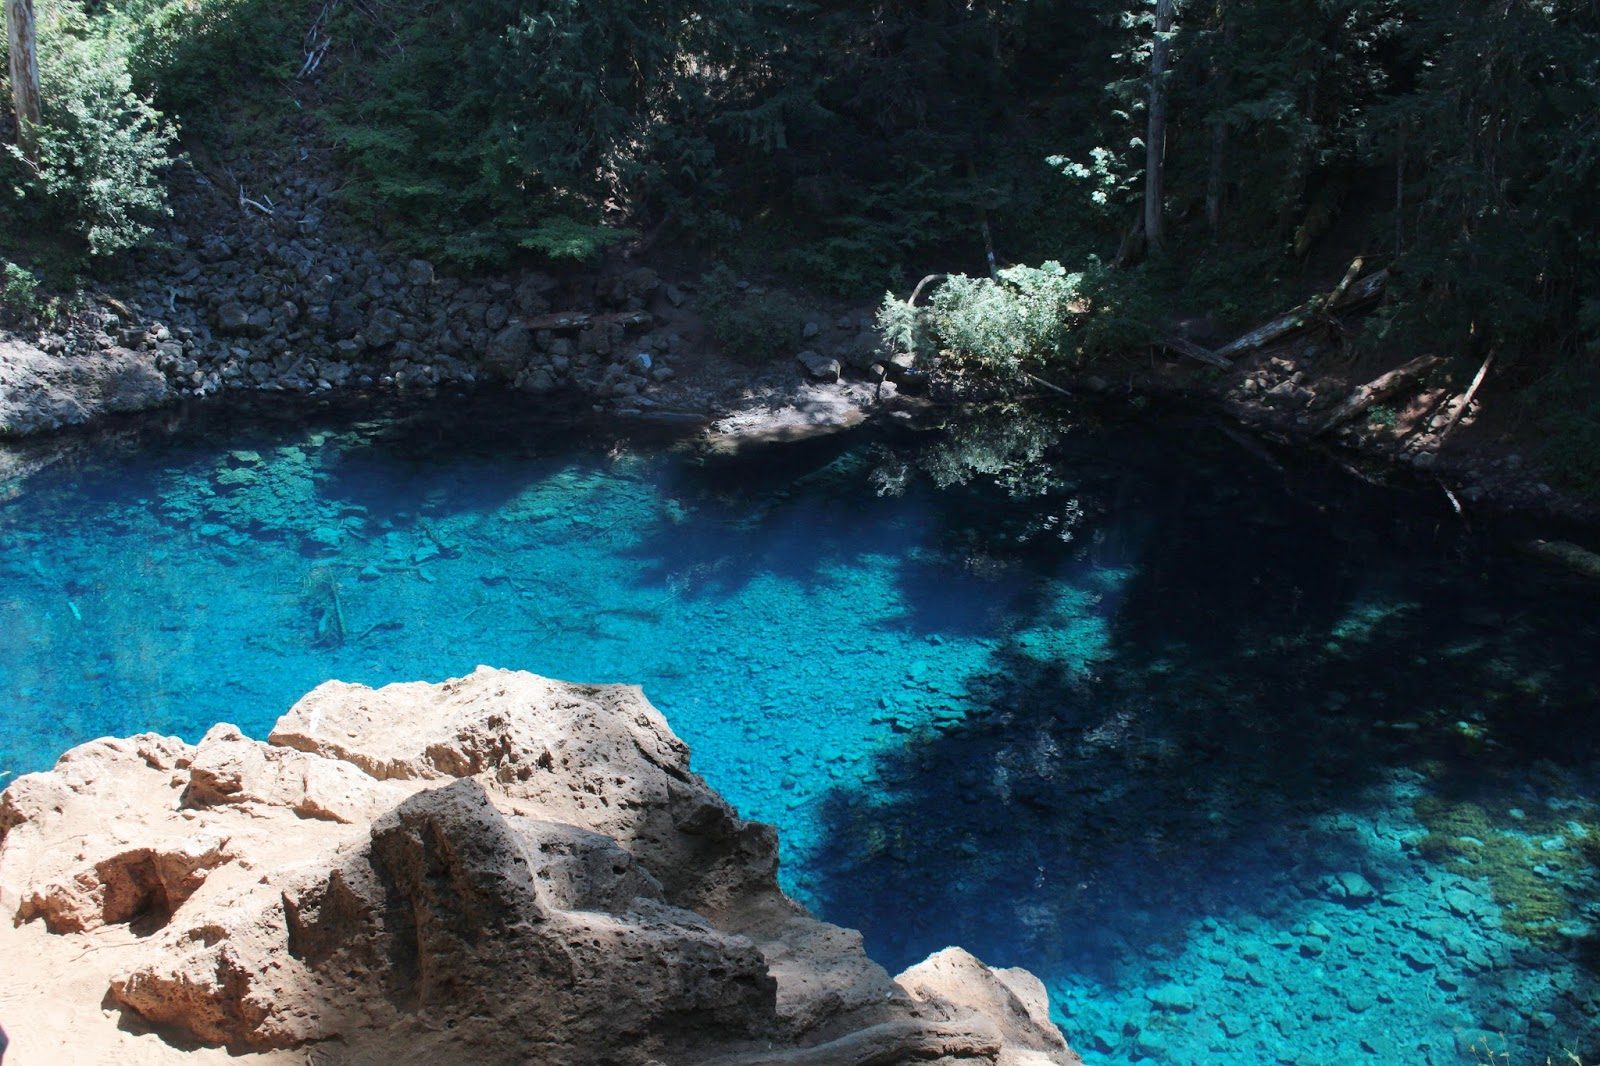 Tamolitch blue pool Address As Selfappointed Ambassador Of Hiking Believe That Everybody Should Go Hiking But Then There Are Places Like Tamolitch Blue Pool And Realize That Richard Hikes Richard Hikes Tamolitch Blue Pool club Hike